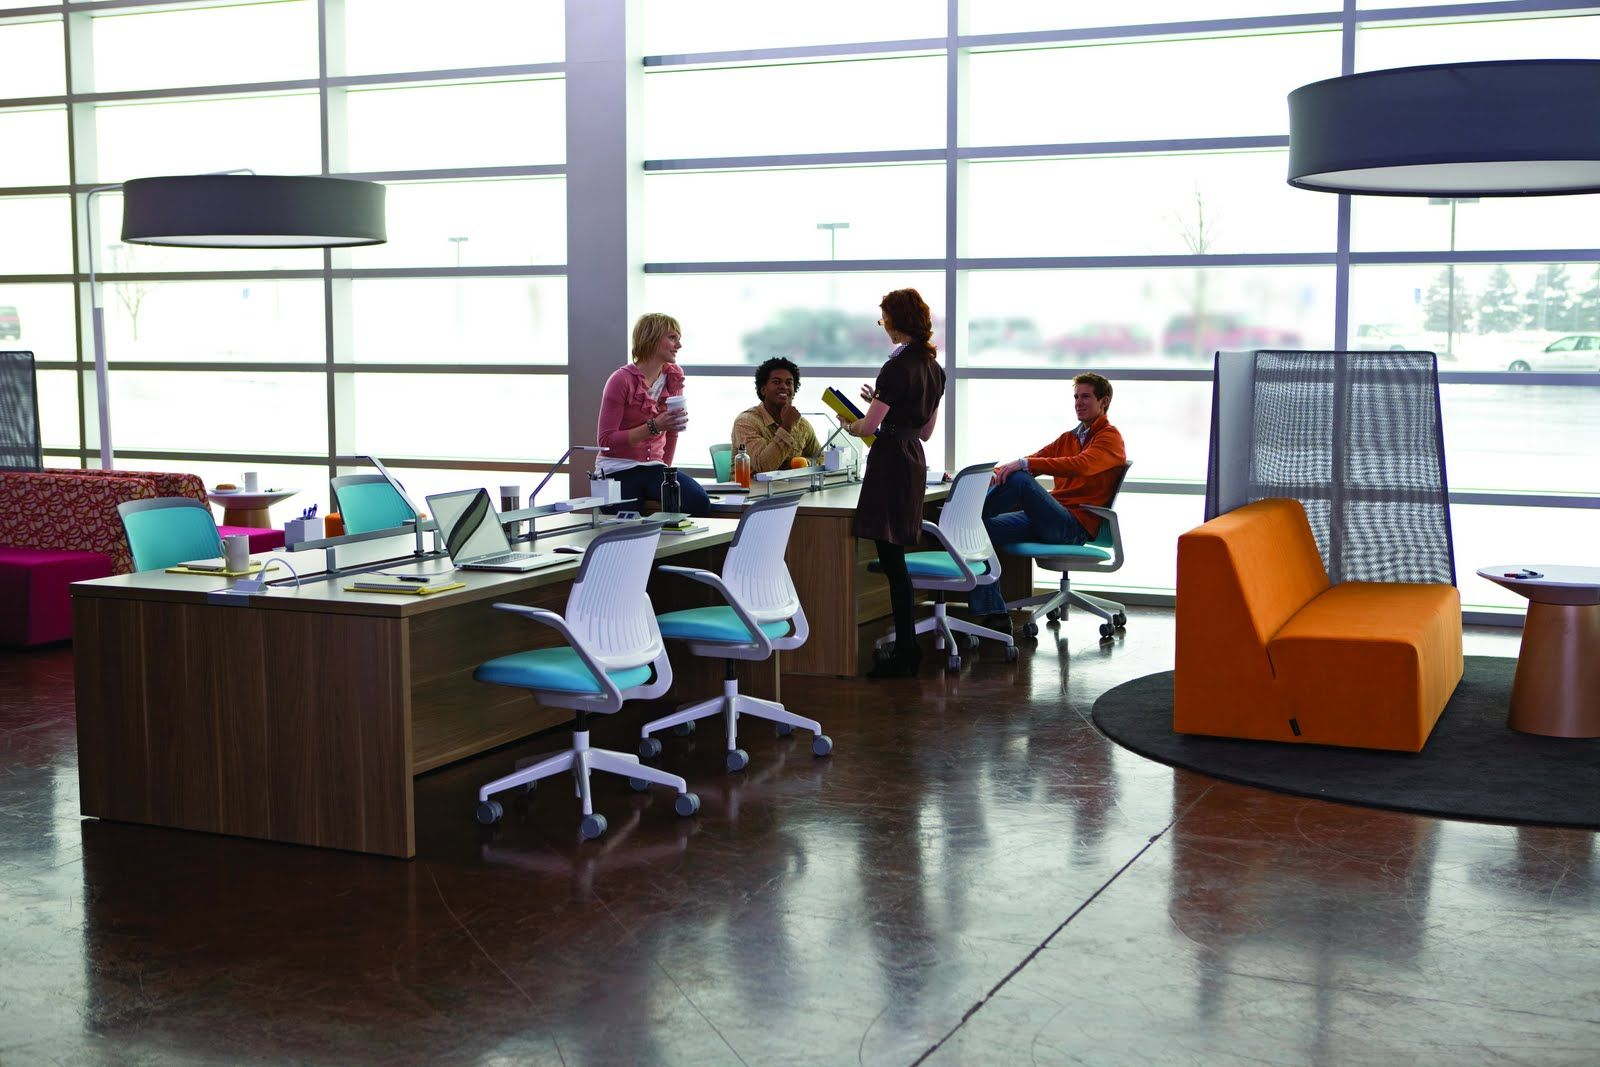 Between Advancements In Technology Millennial Demands And Globalization The World Of Work Is